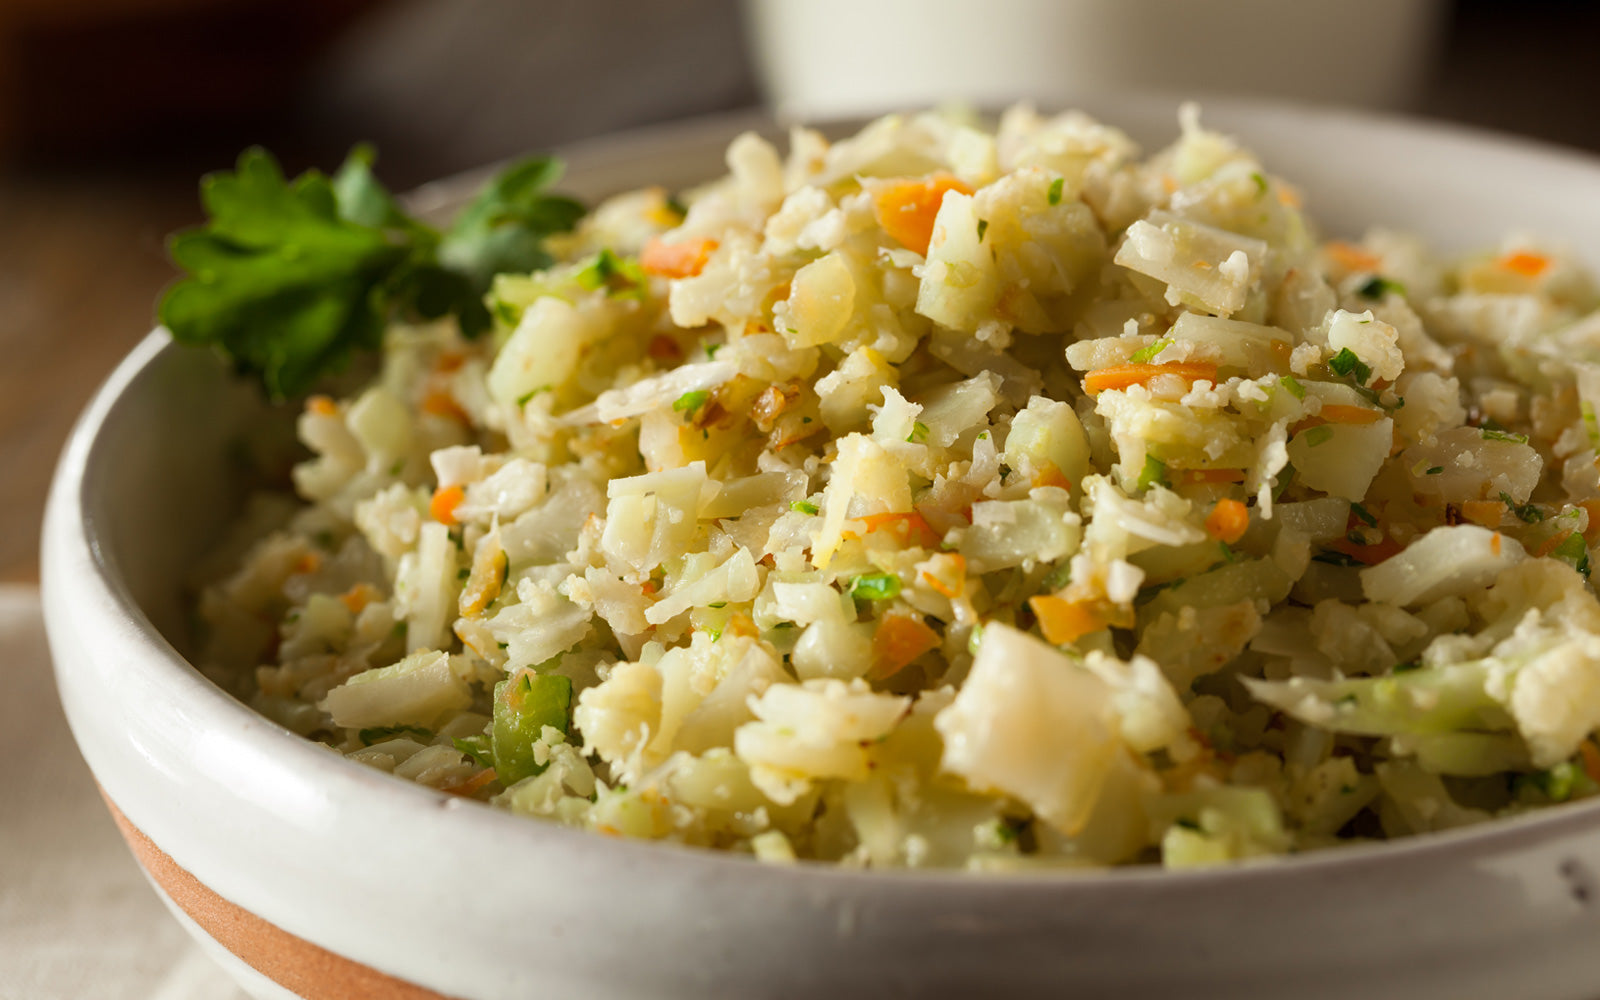 How to Make Riced Cauliflower